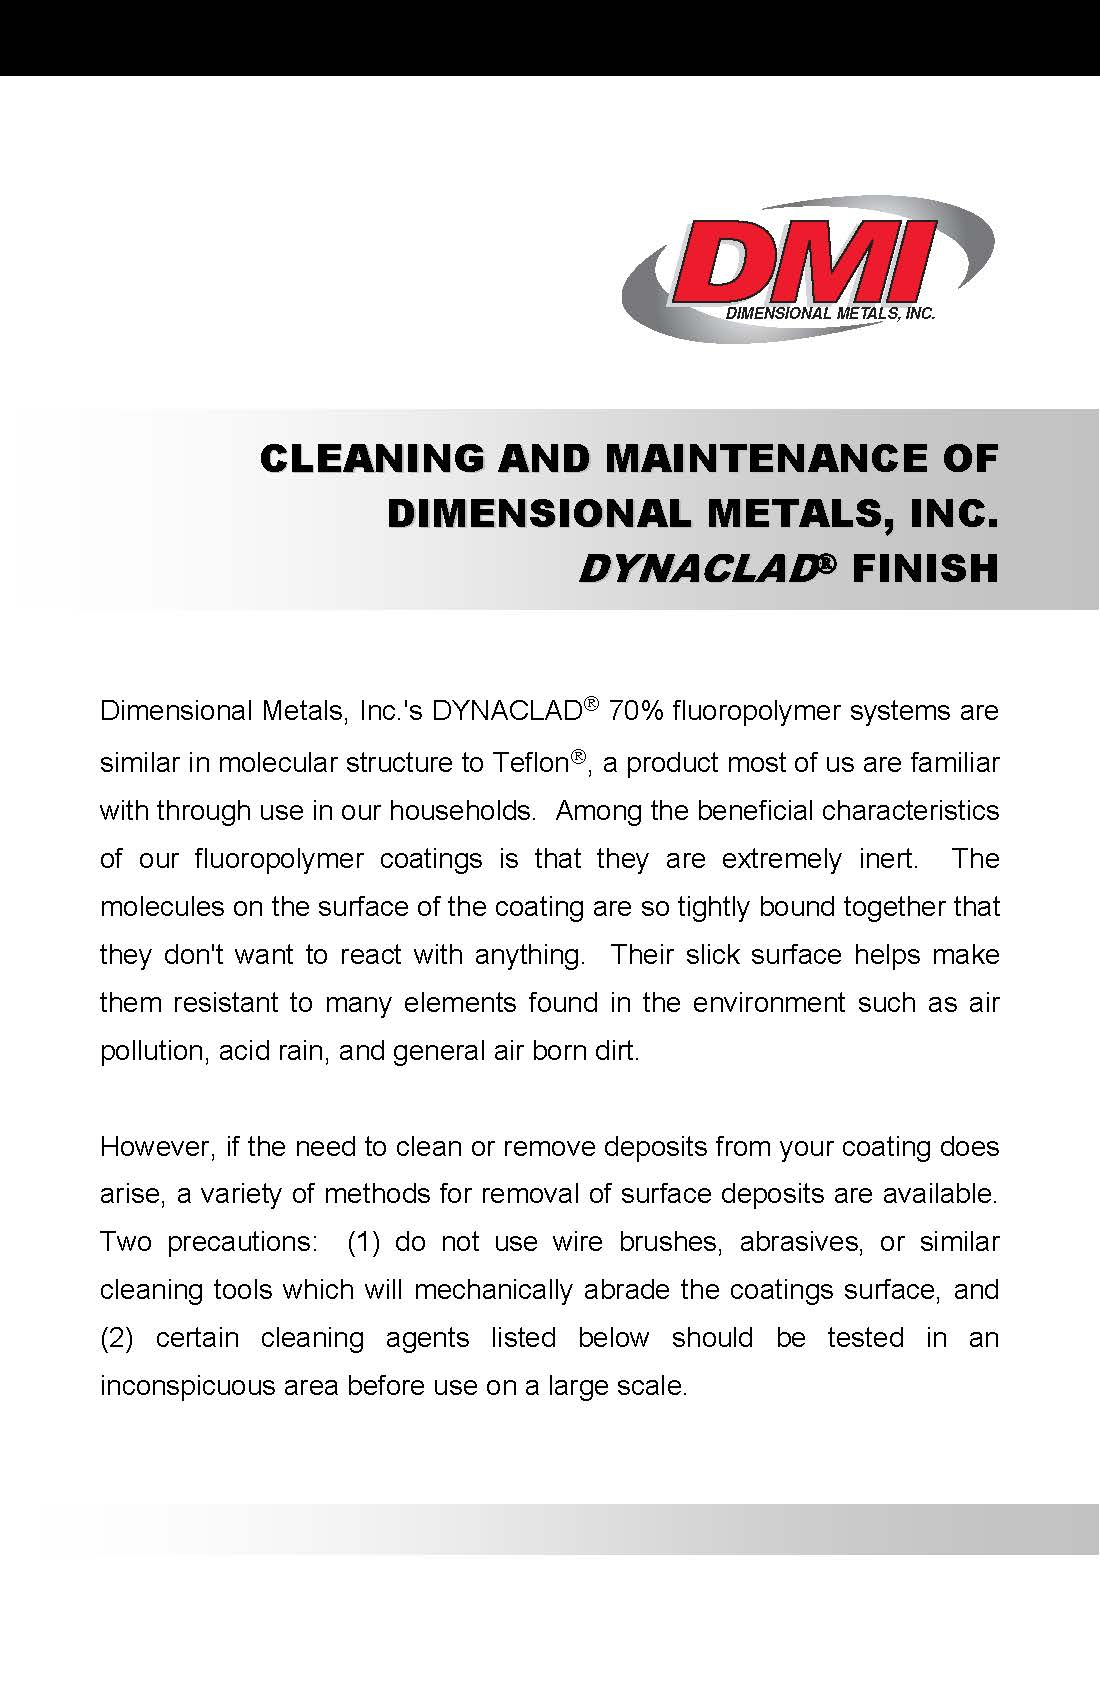 dmi-cleaning-maint-info